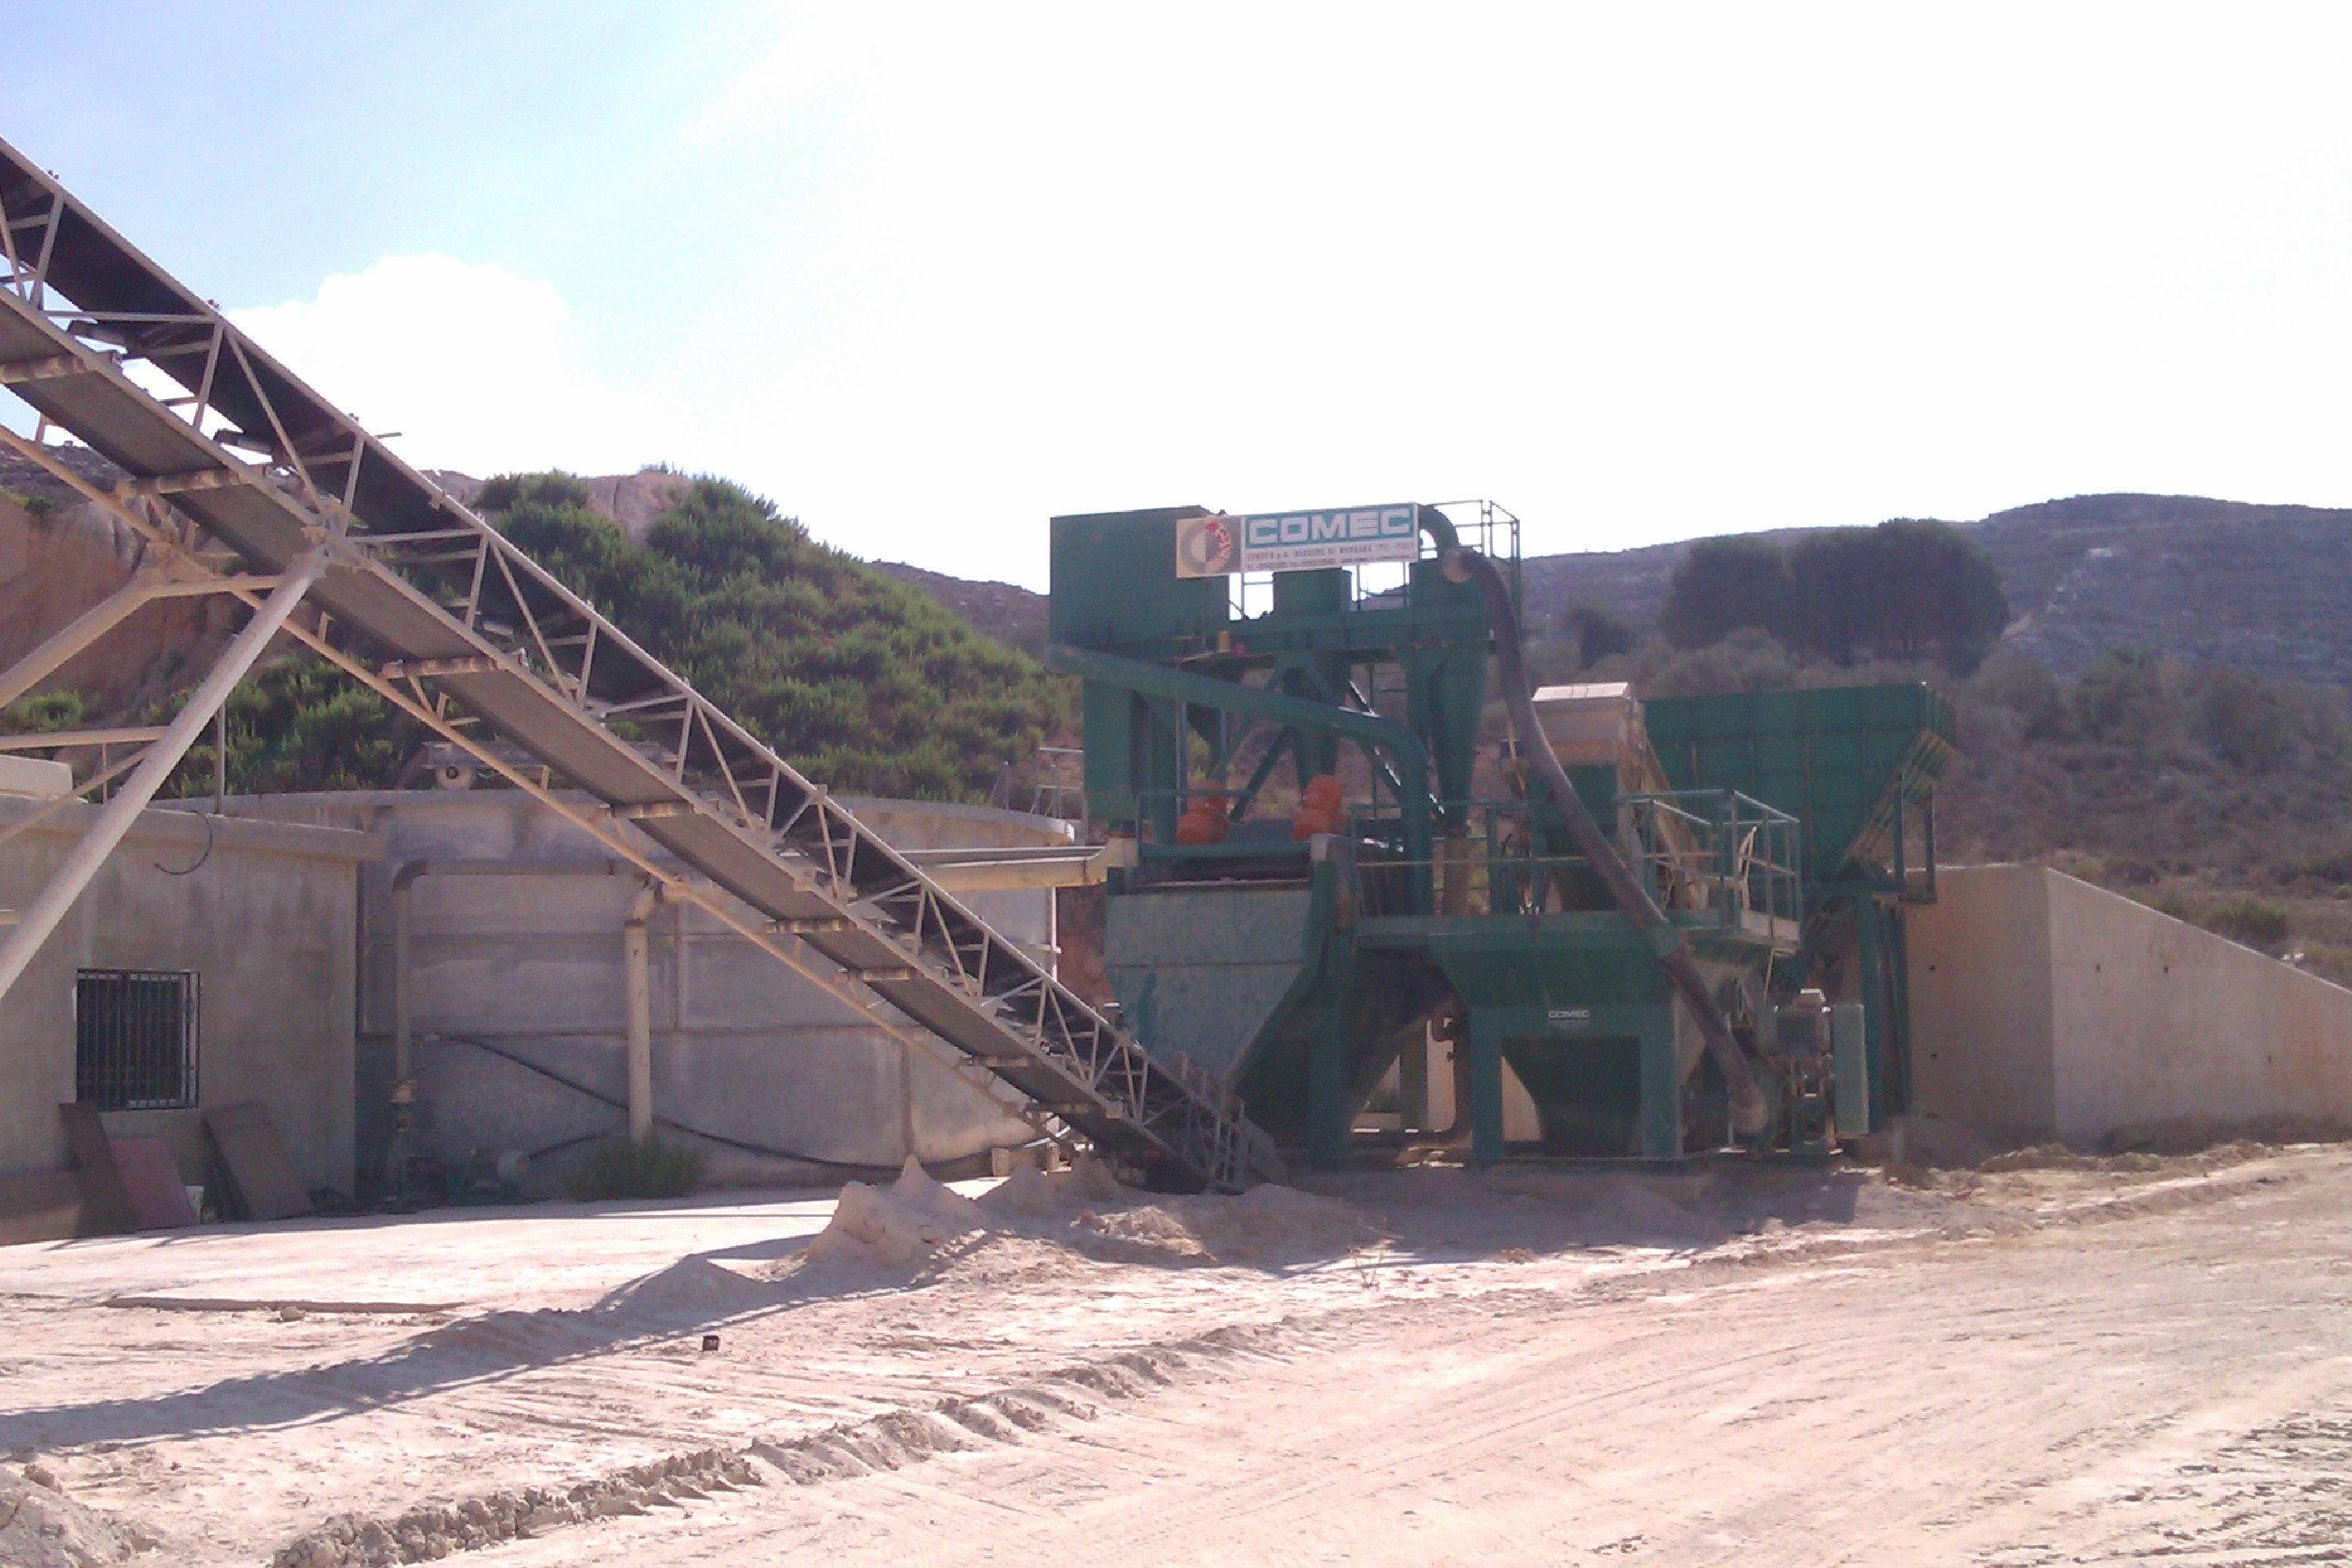 Yamen implements the latest technology in sand washing industry to provide superior sand quality for...